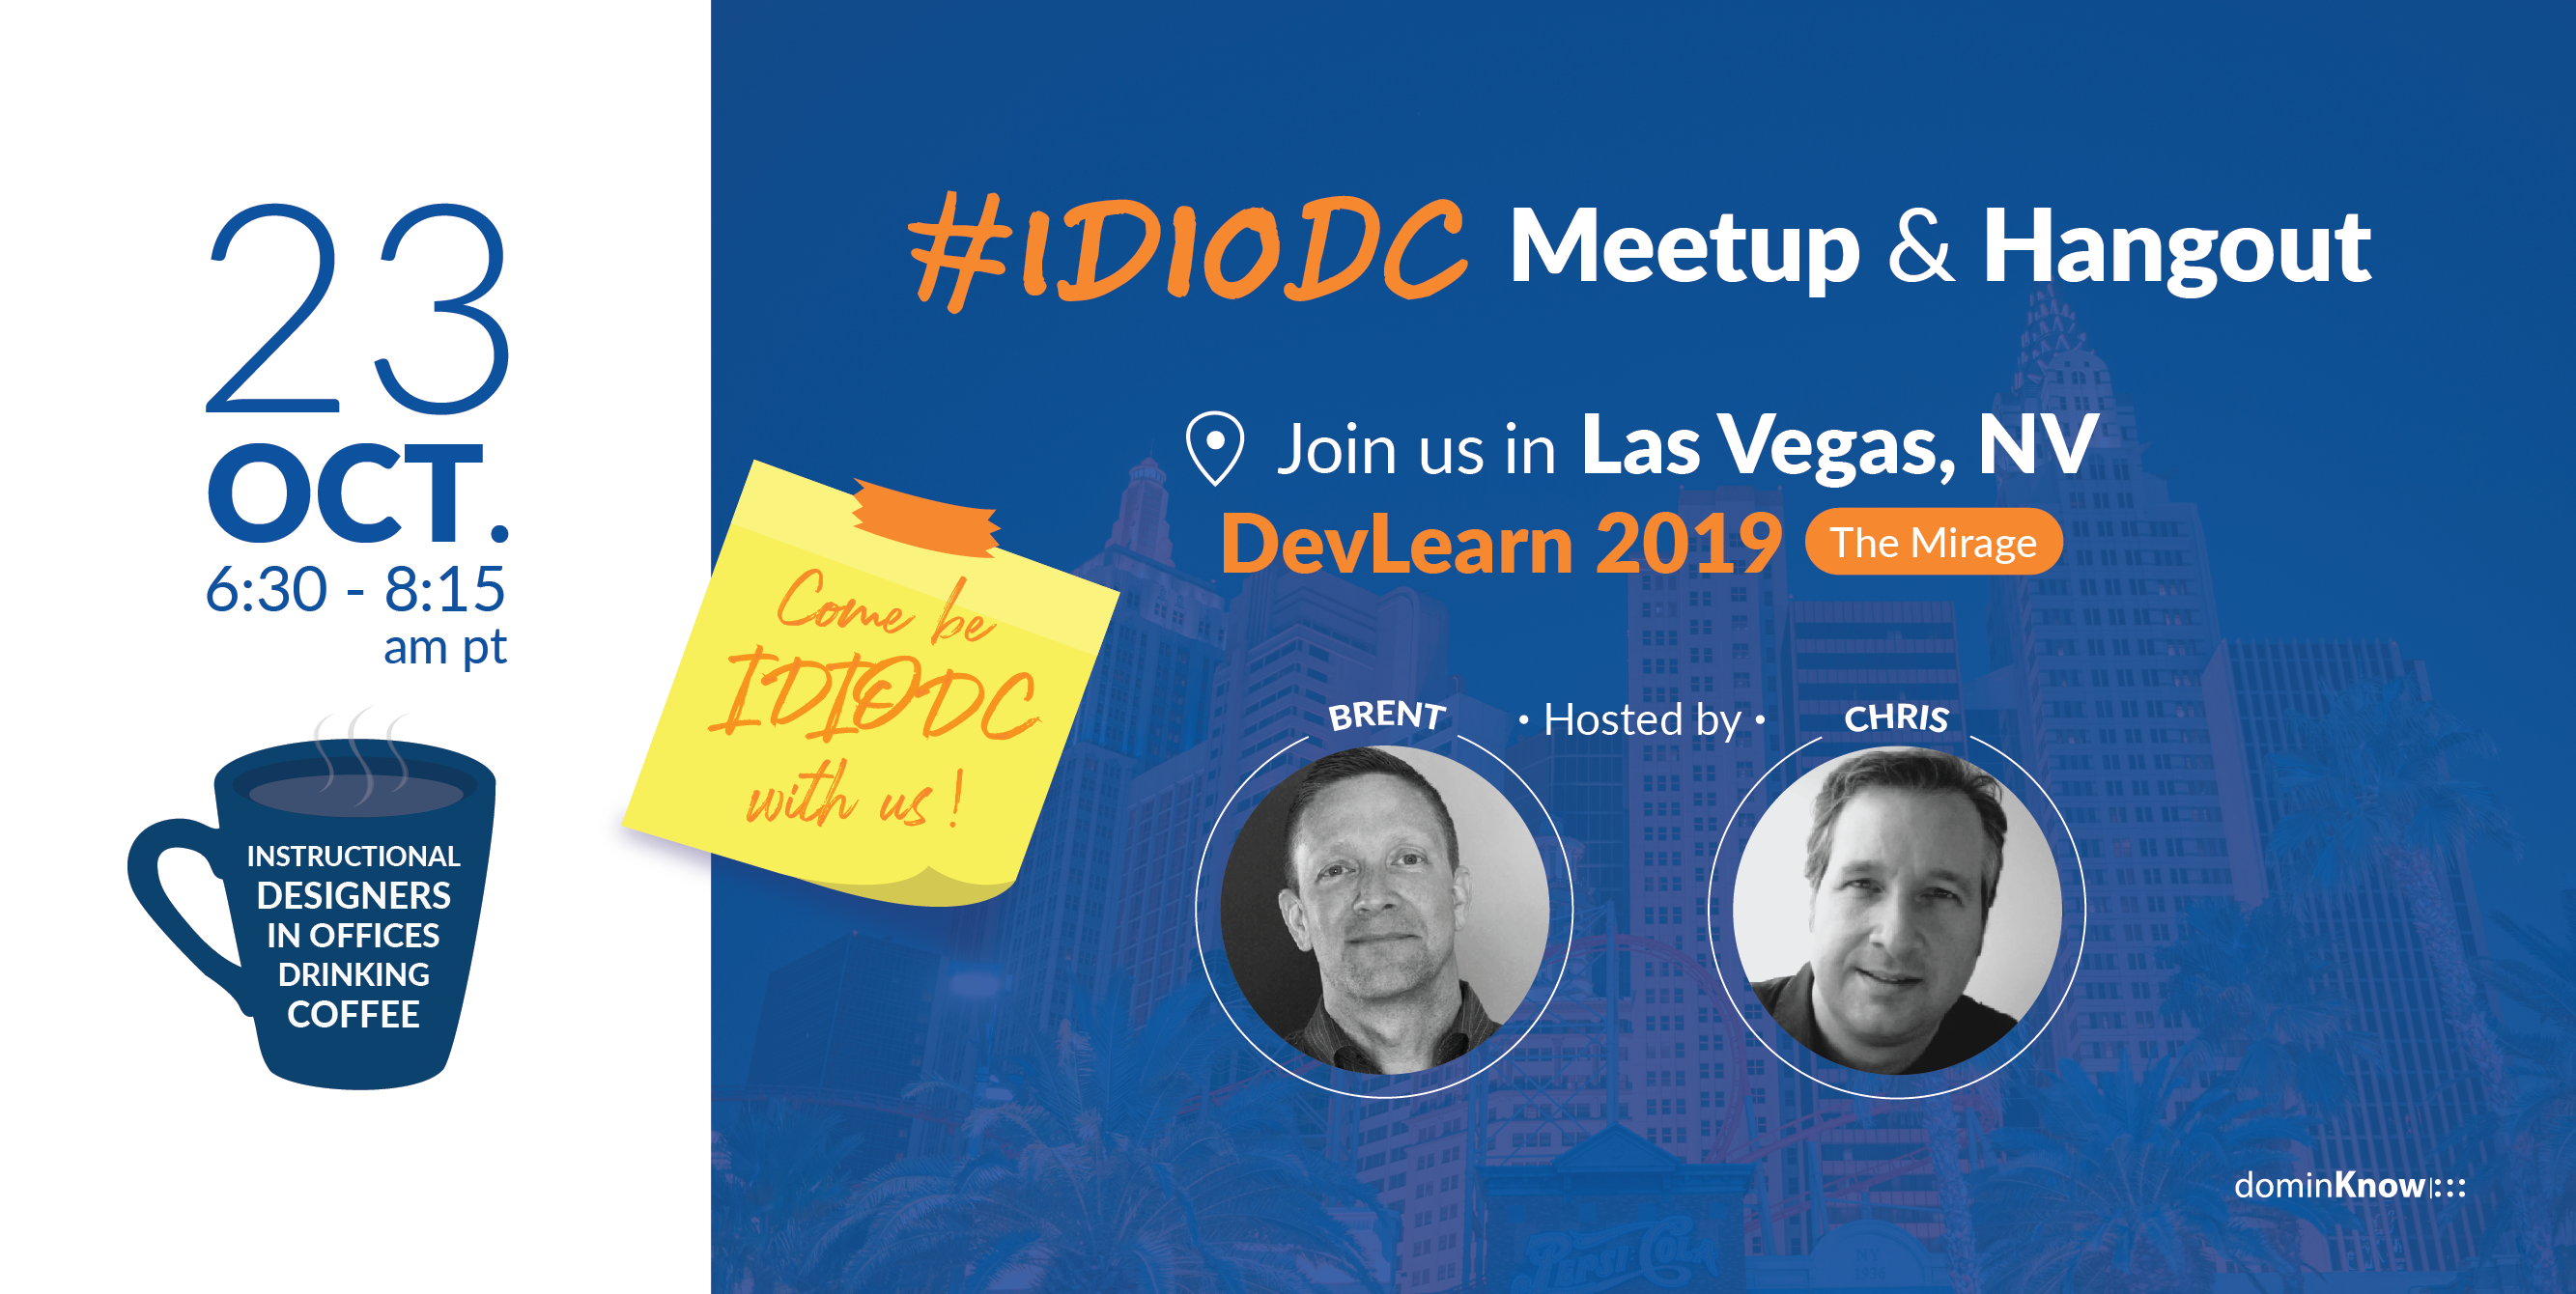 IDIODC goes live from The eLearning Guild's conference and expo in Las Vegas - DevLearn.